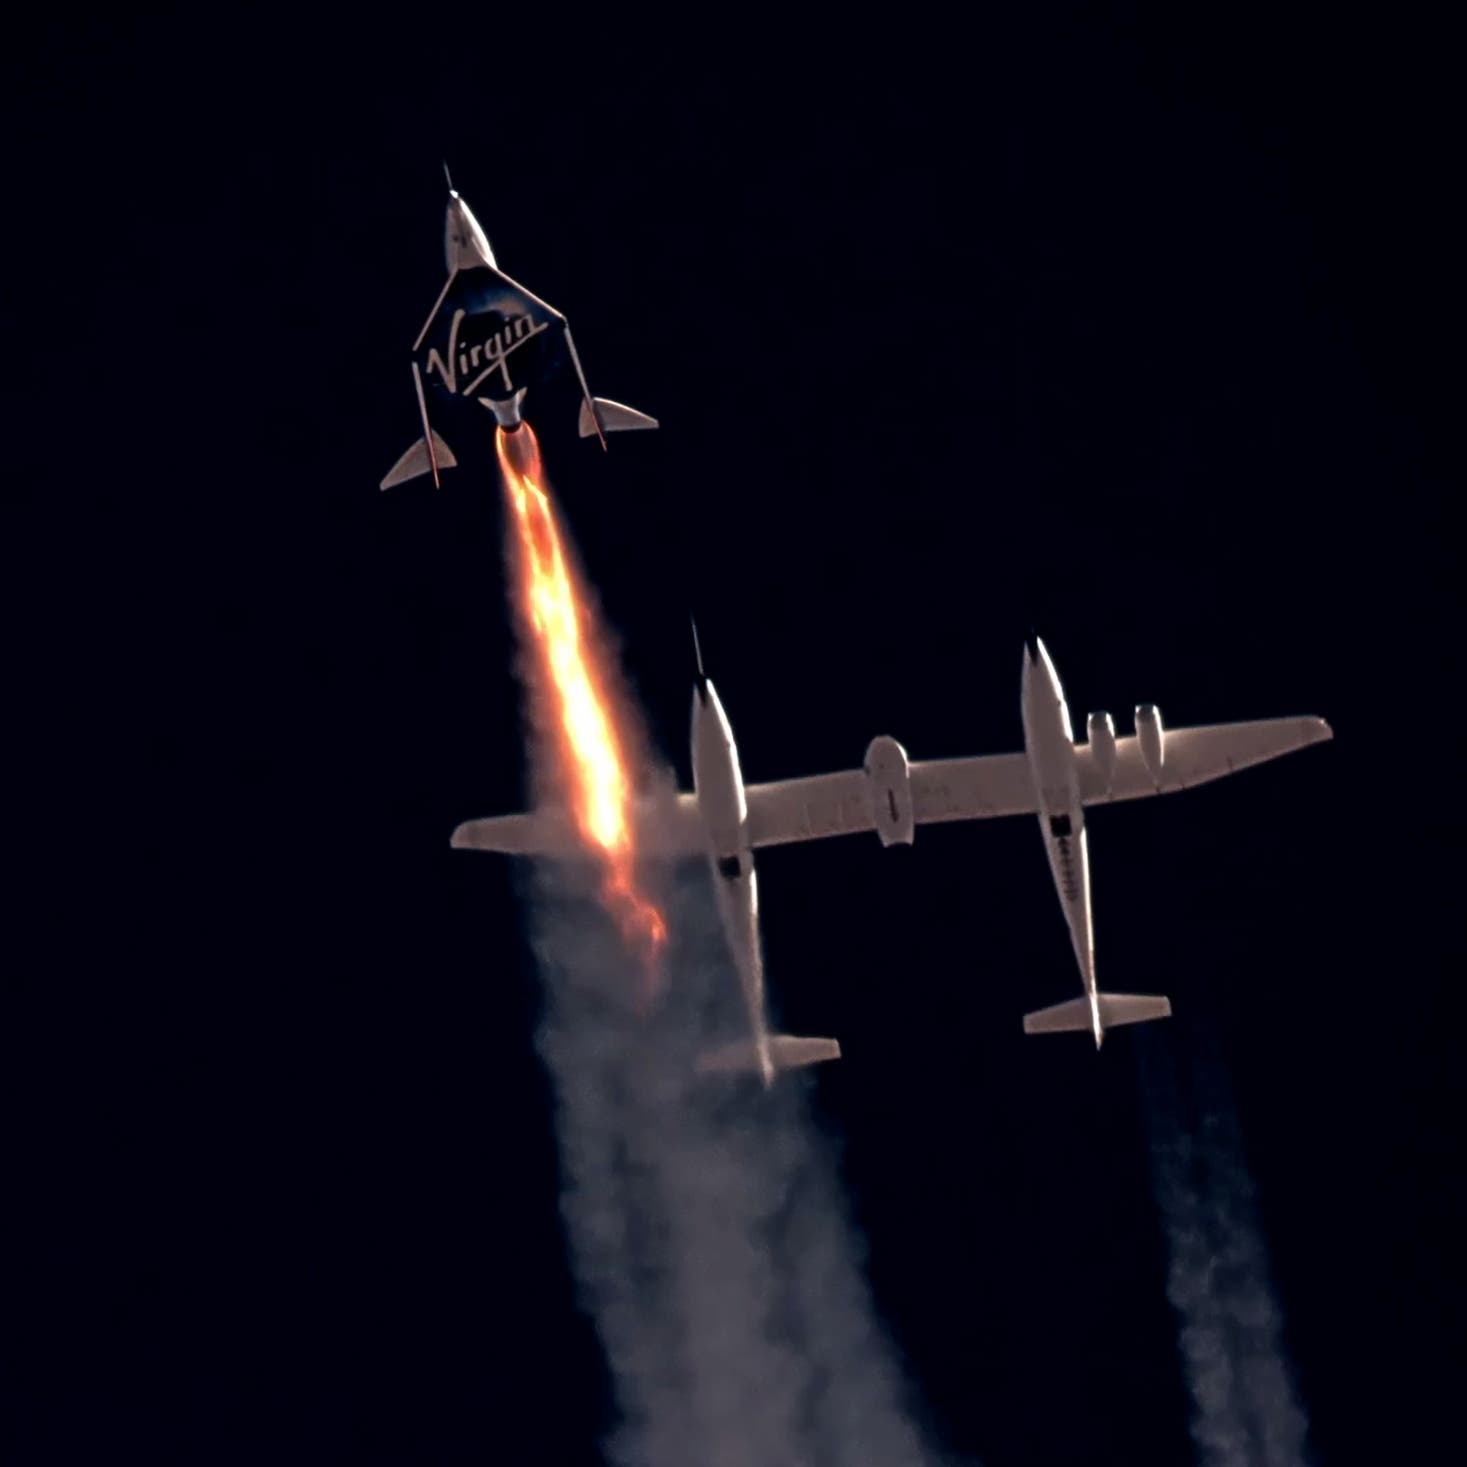 Virgin Galactic flight tickets to space go on sale for $450,000 a seat